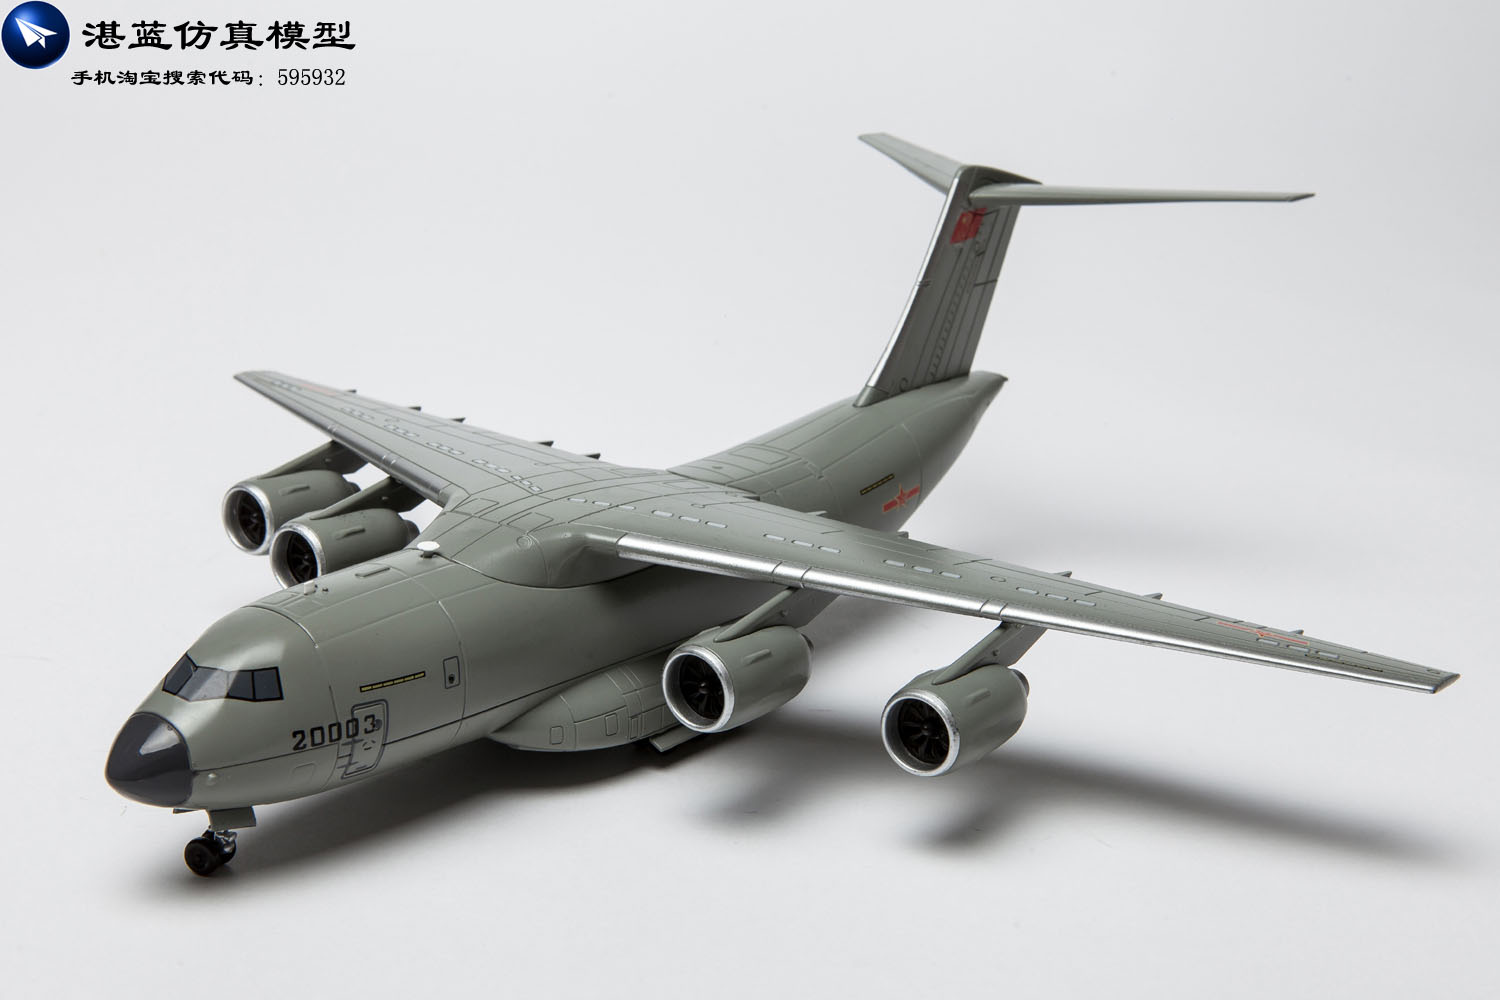 YJ 1/144 Scale Airplane Model Toys Xi'an Y-20 Chubby Girl Military Transport Aircraft Diecast Metal Plane Model Toy For Gift new phoenix 11207 b777 300er pk gii 1 400 skyteam aviation indonesia commercial jetliners plane model hobby